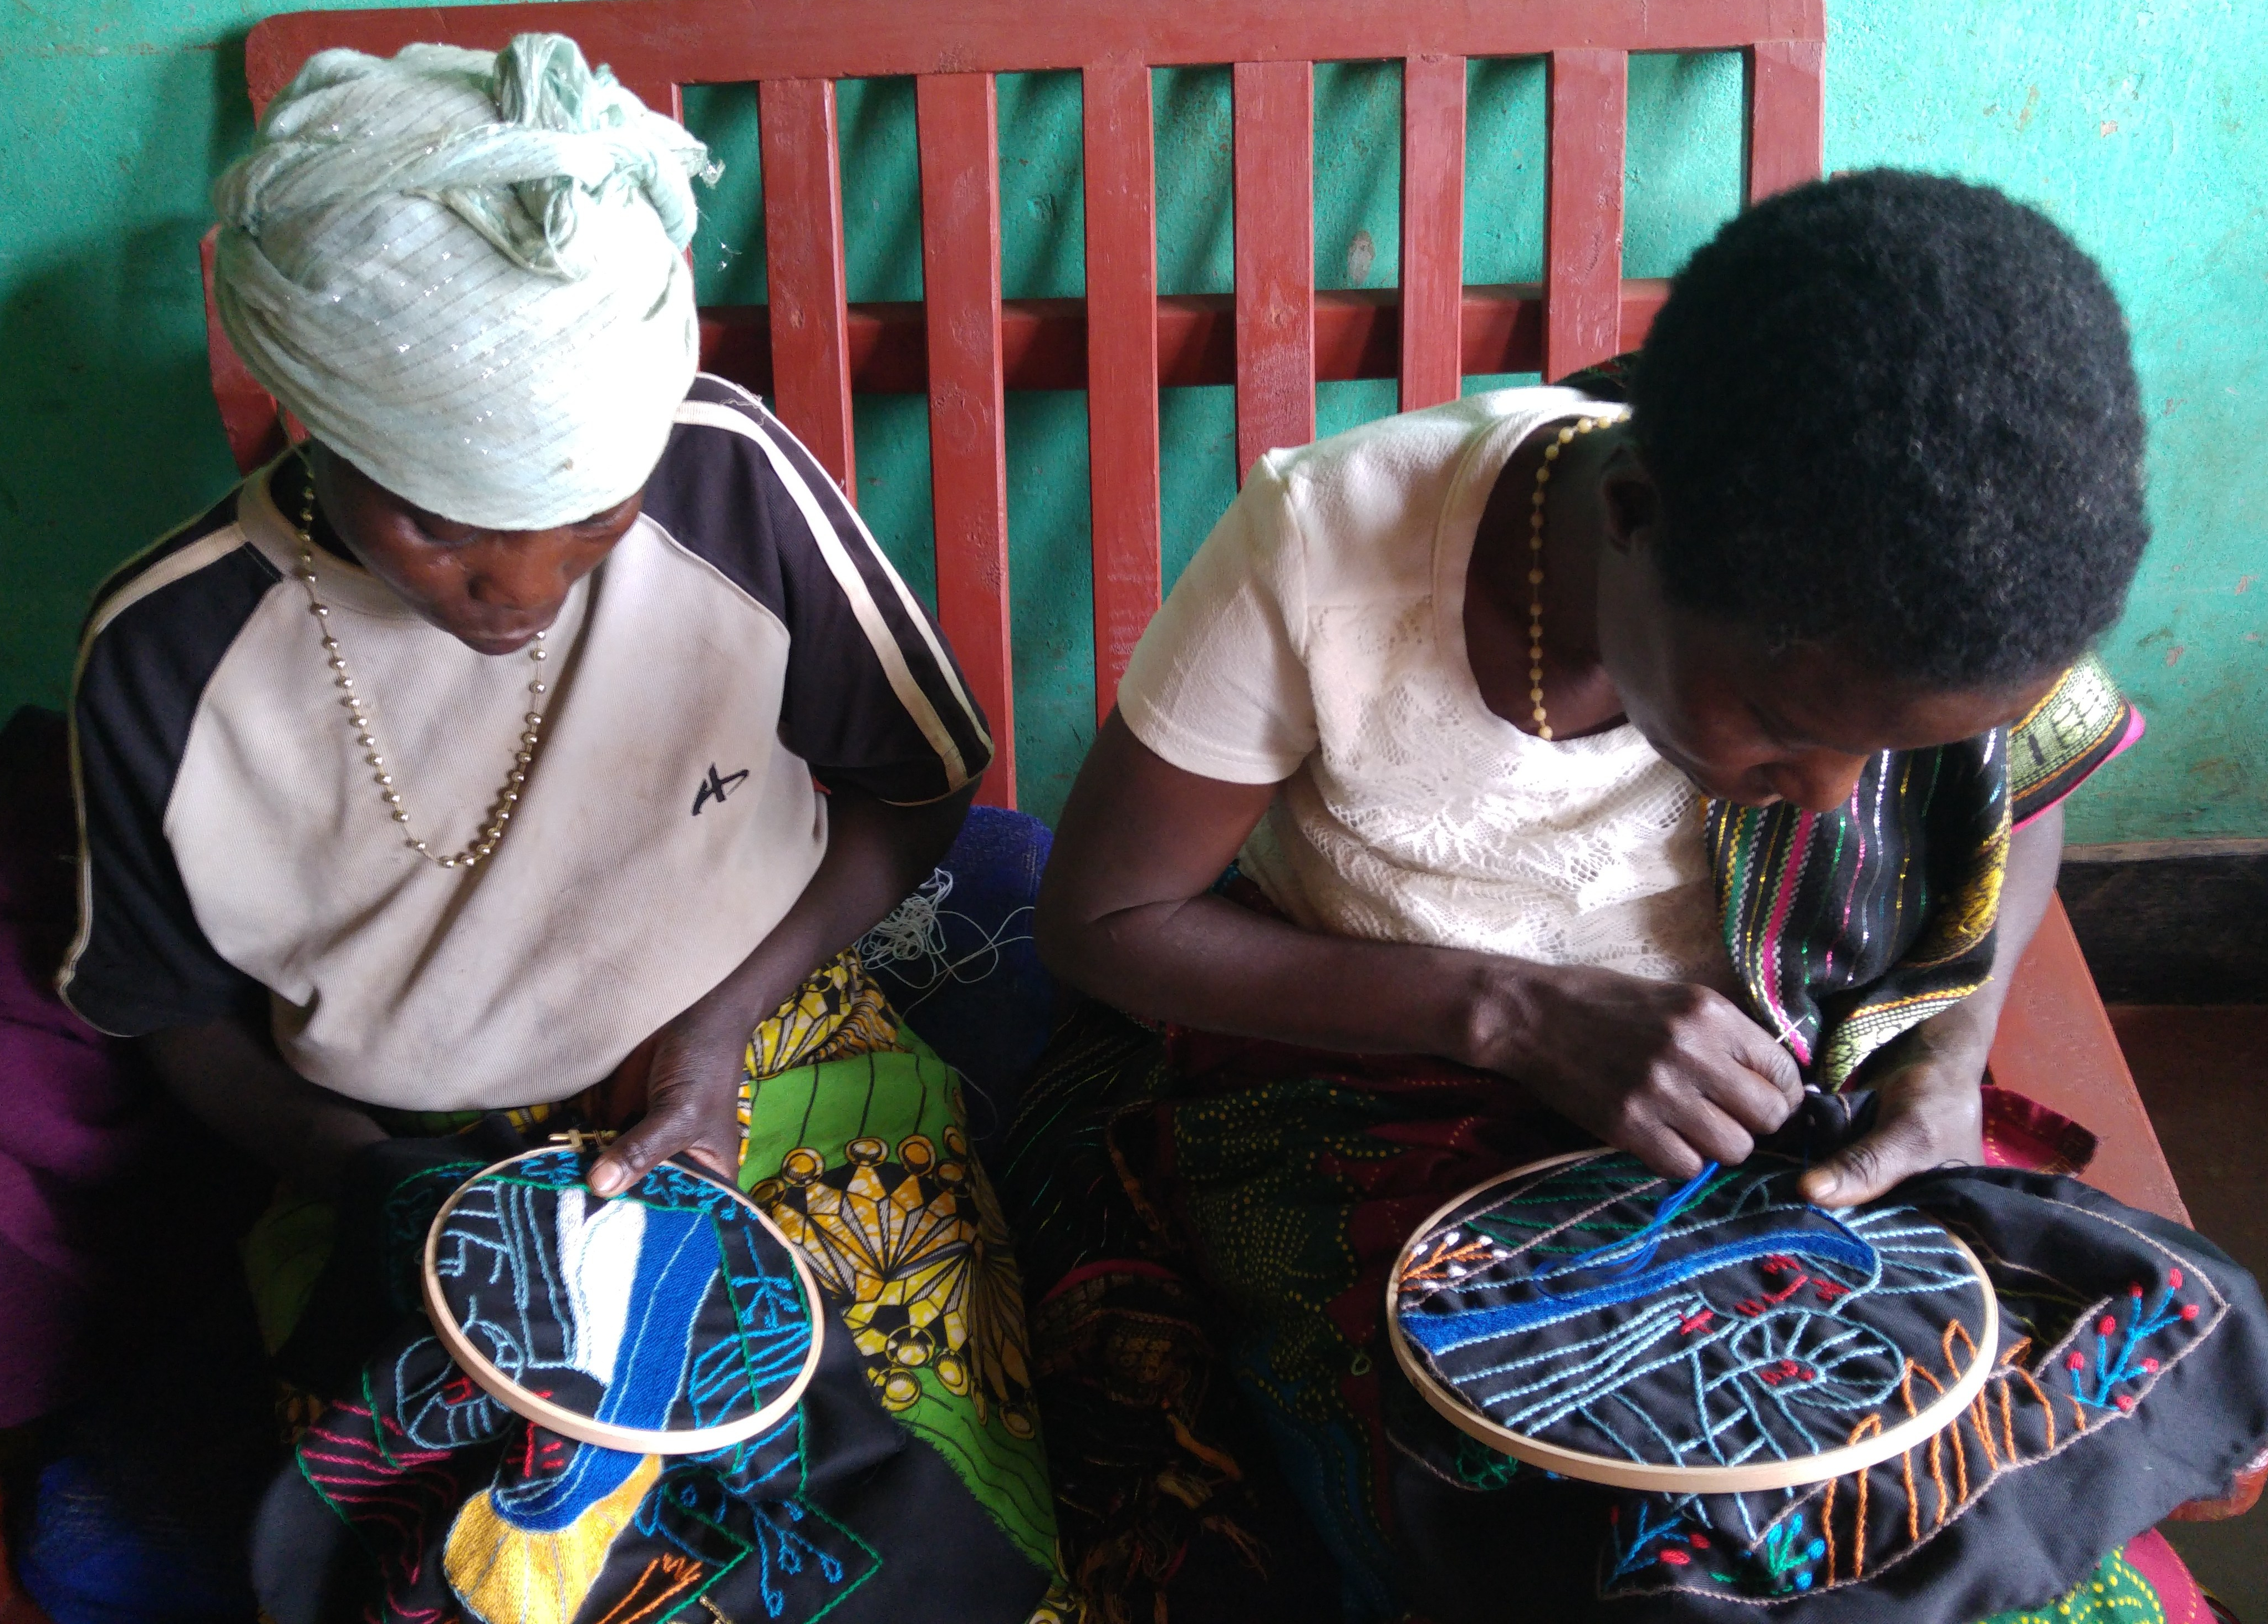 Women from the Kibeho Embroidery project